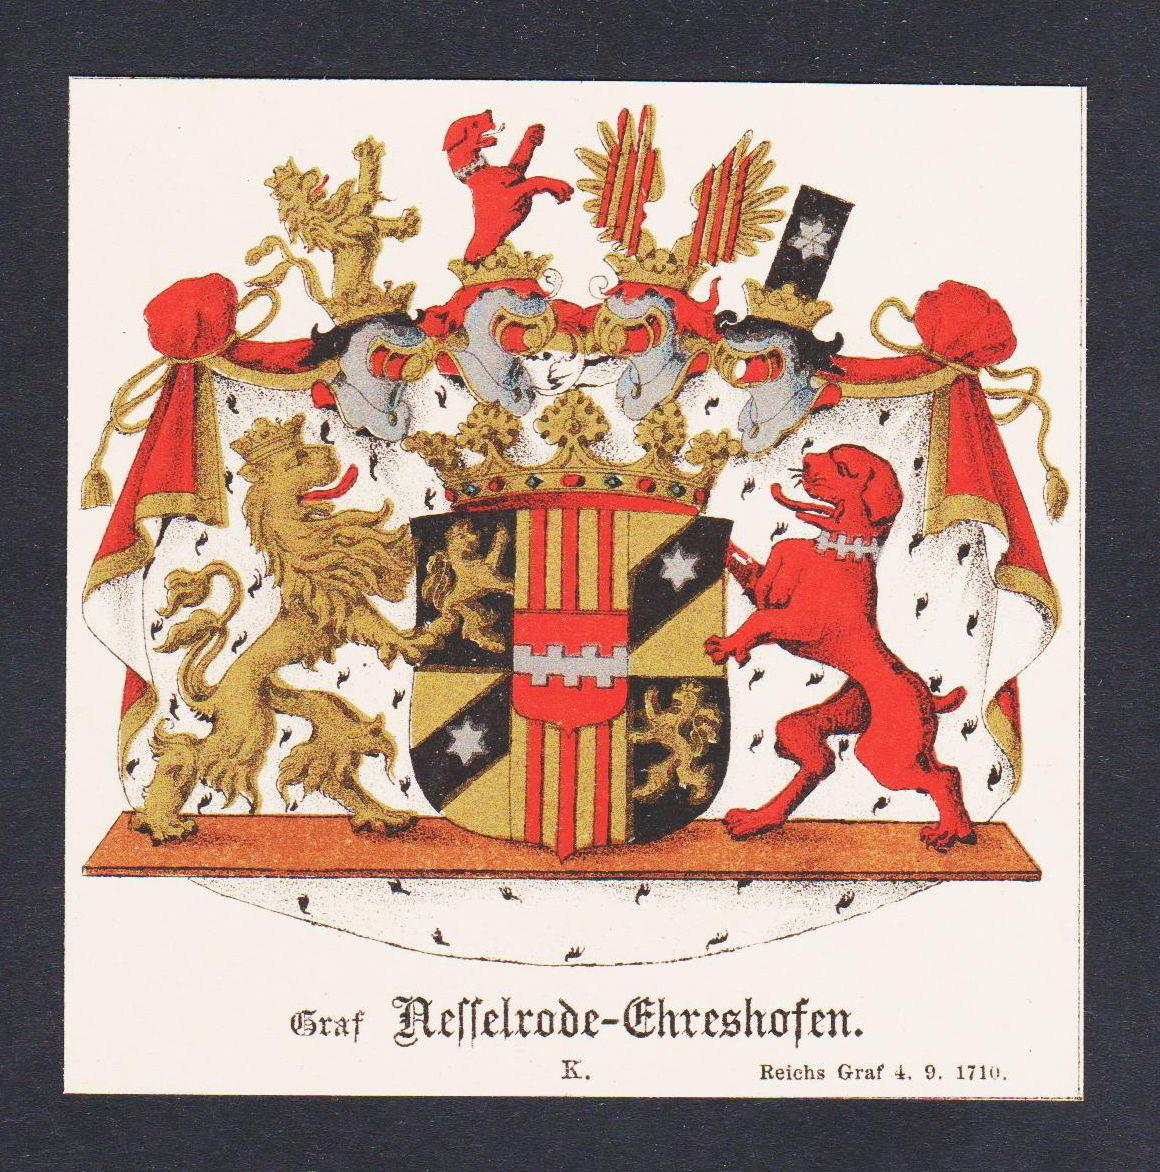 Nesselrode Ehreshofen Wappen Heraldik coat of arms